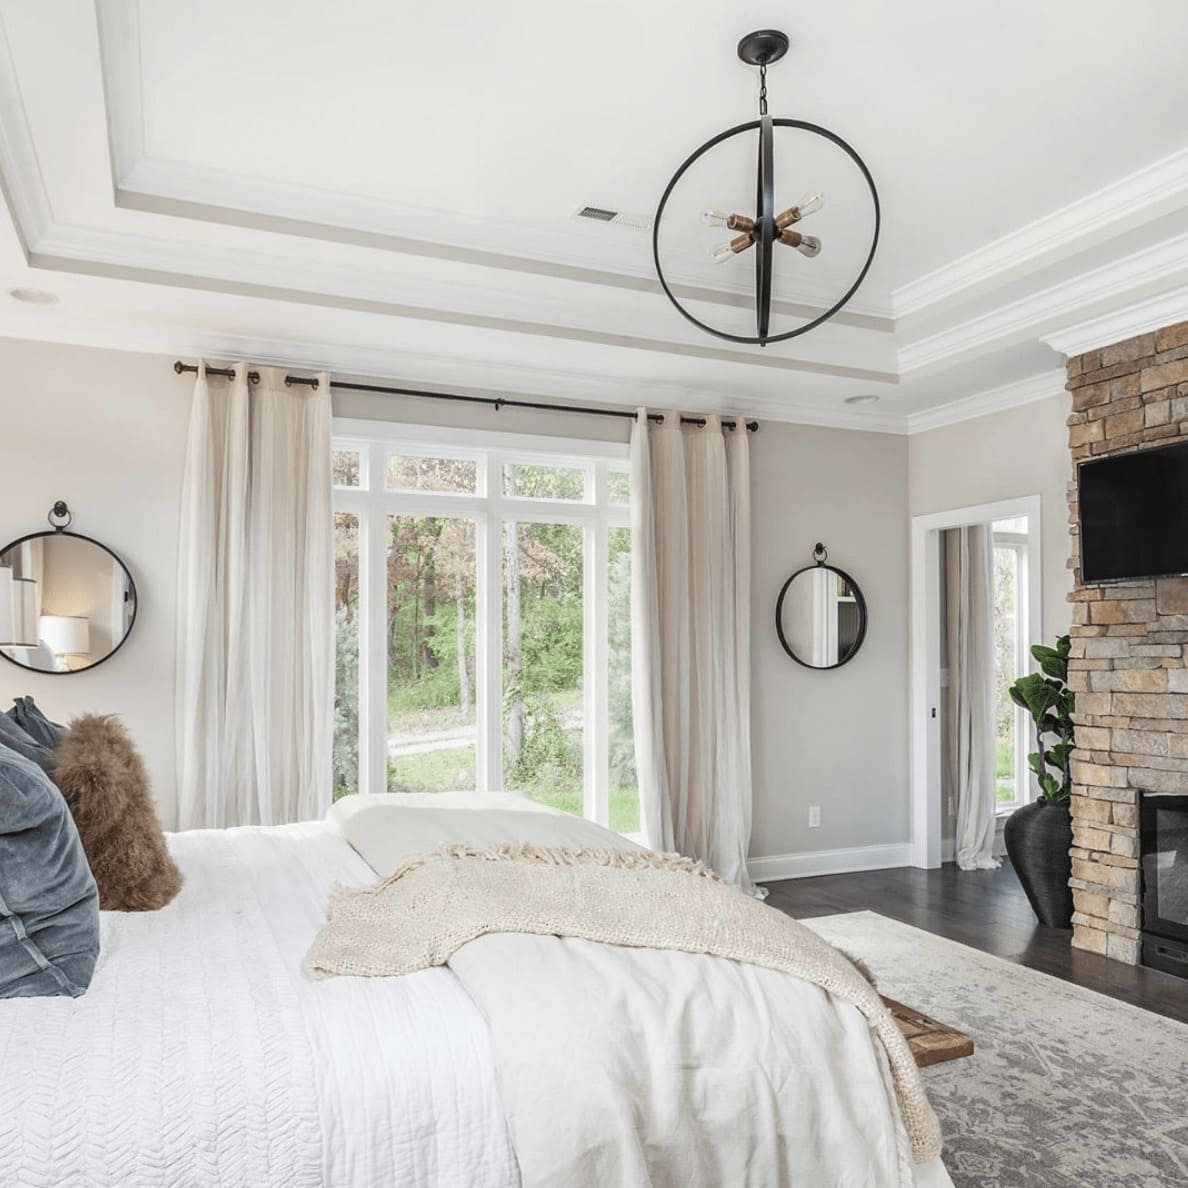 A bedroom with a brick fireplace, a large window, and a bed with decorative pillows and blankets on top